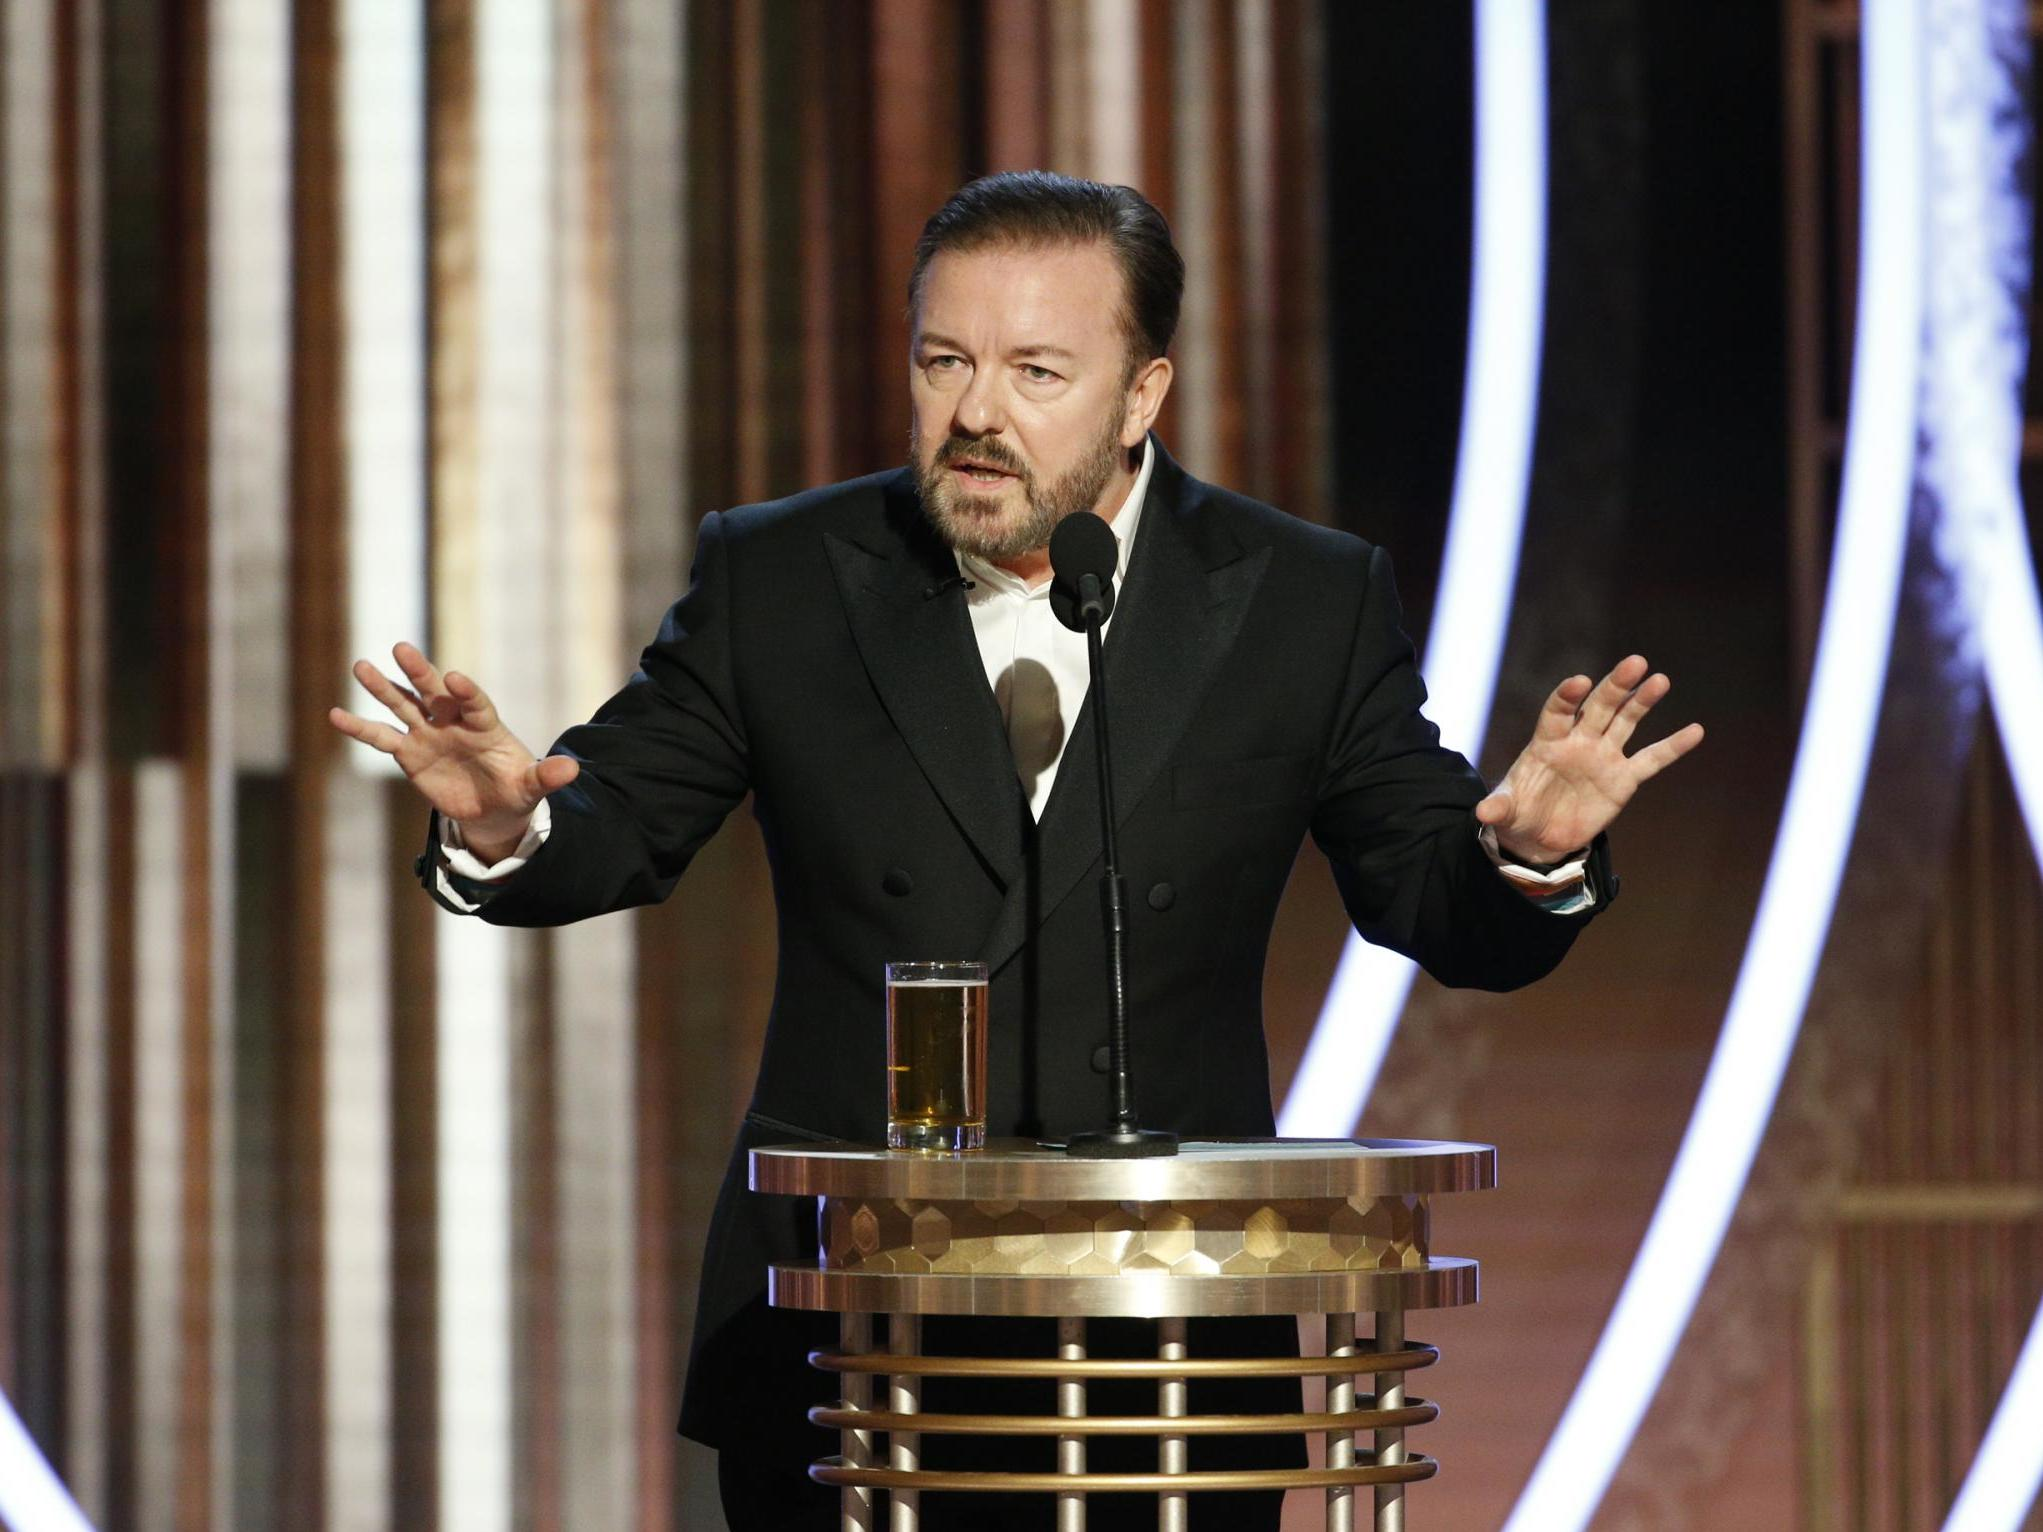 Ricky Gervais says he negotiated with 15 lawyers and executives over how to refer to Judi Dench's genitals at the Golden Globes